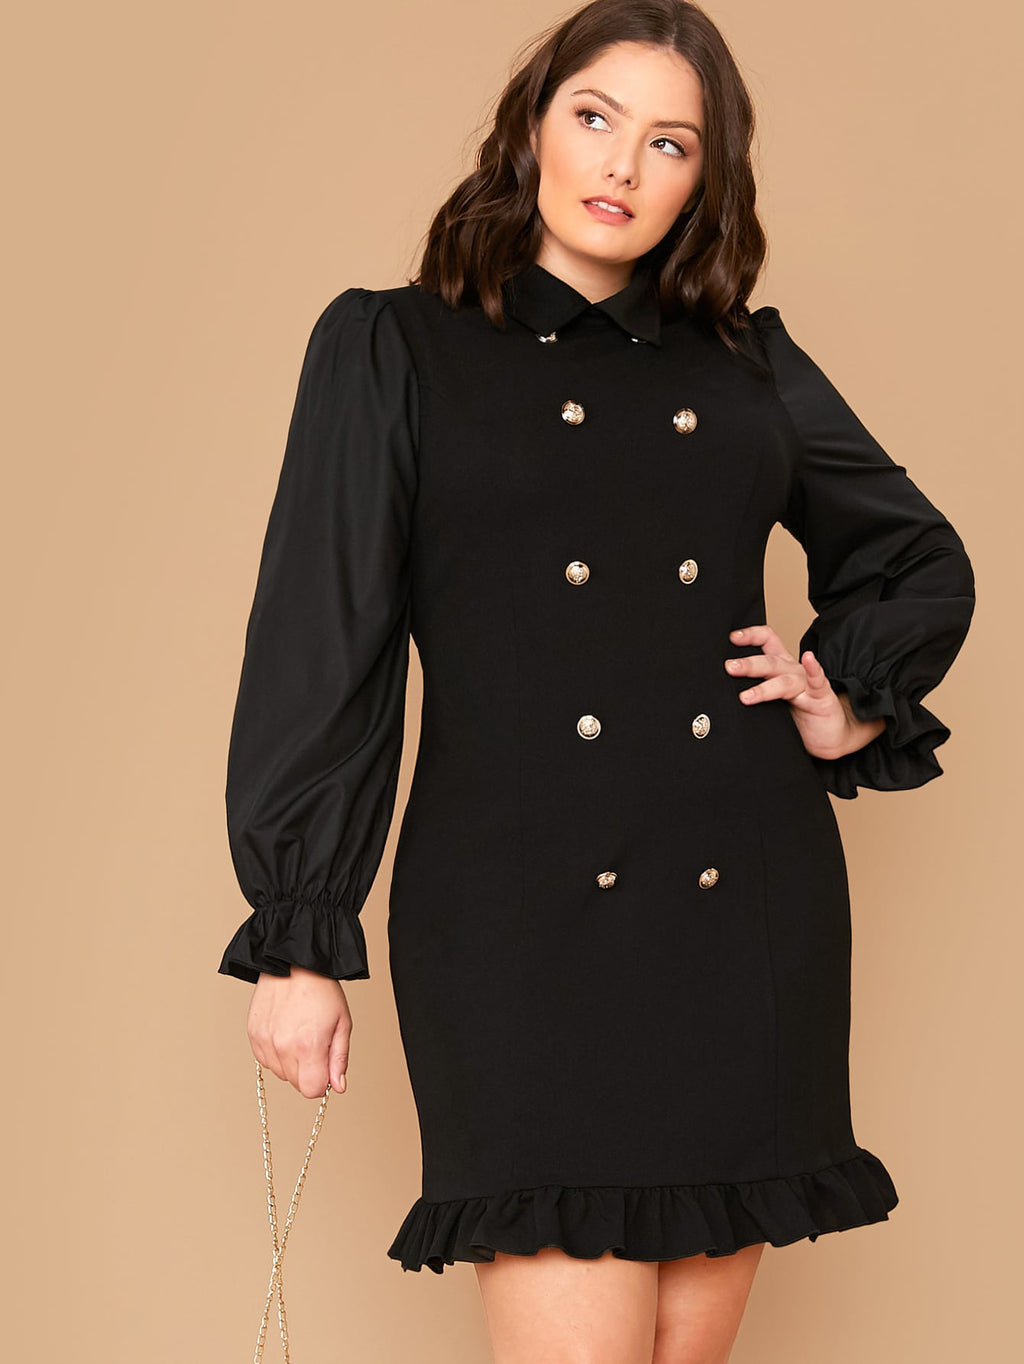 Plus Size Chic Cadet Double Breasted Dress